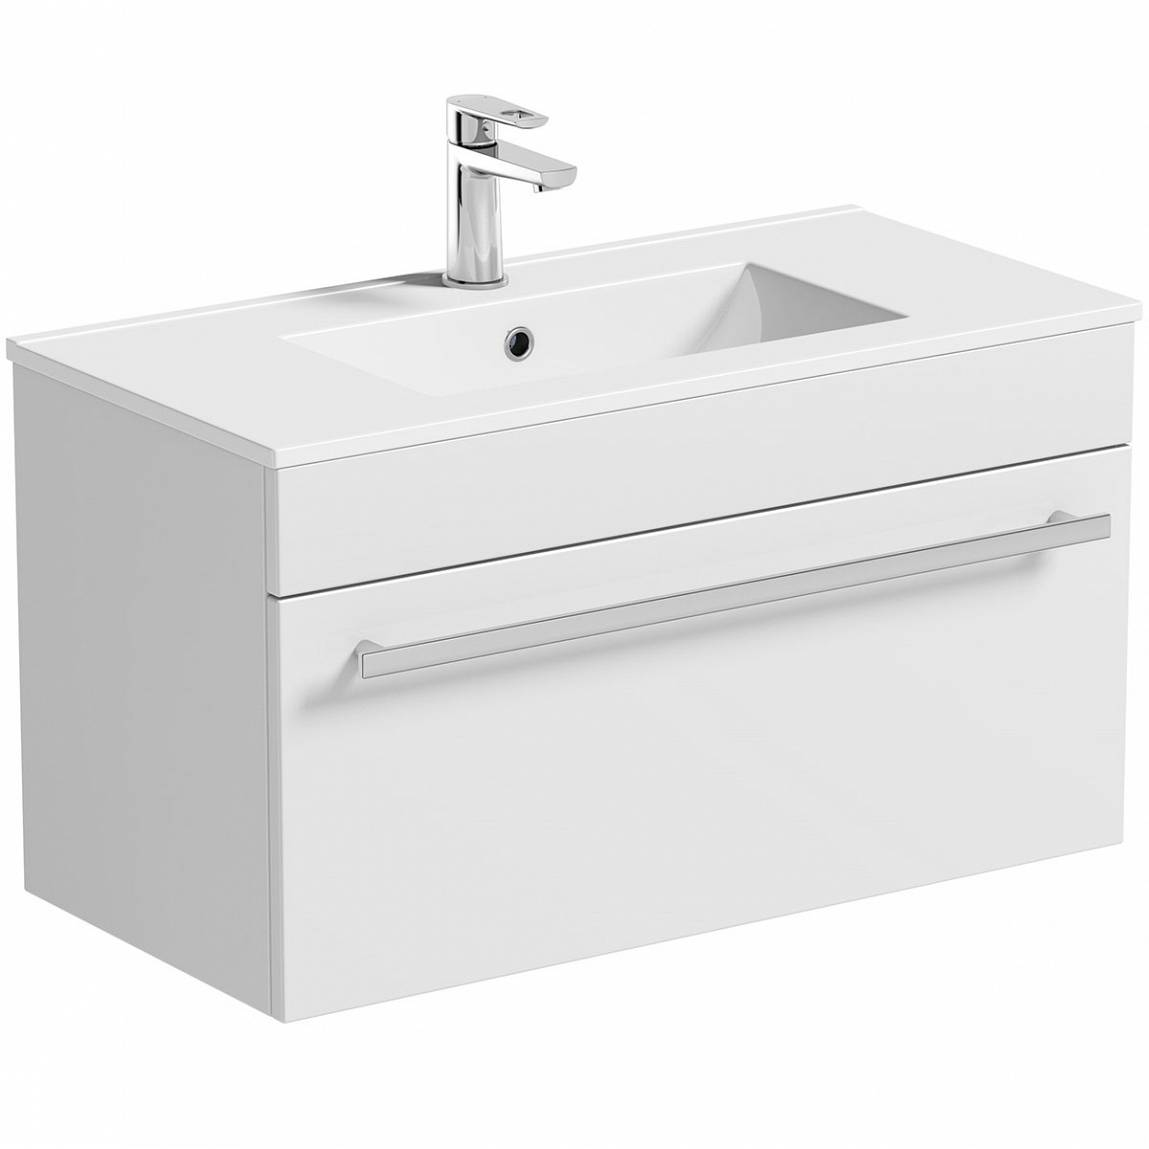 Image of Odessa White Wall Hung 800 Drawer Unit & Inset Basin